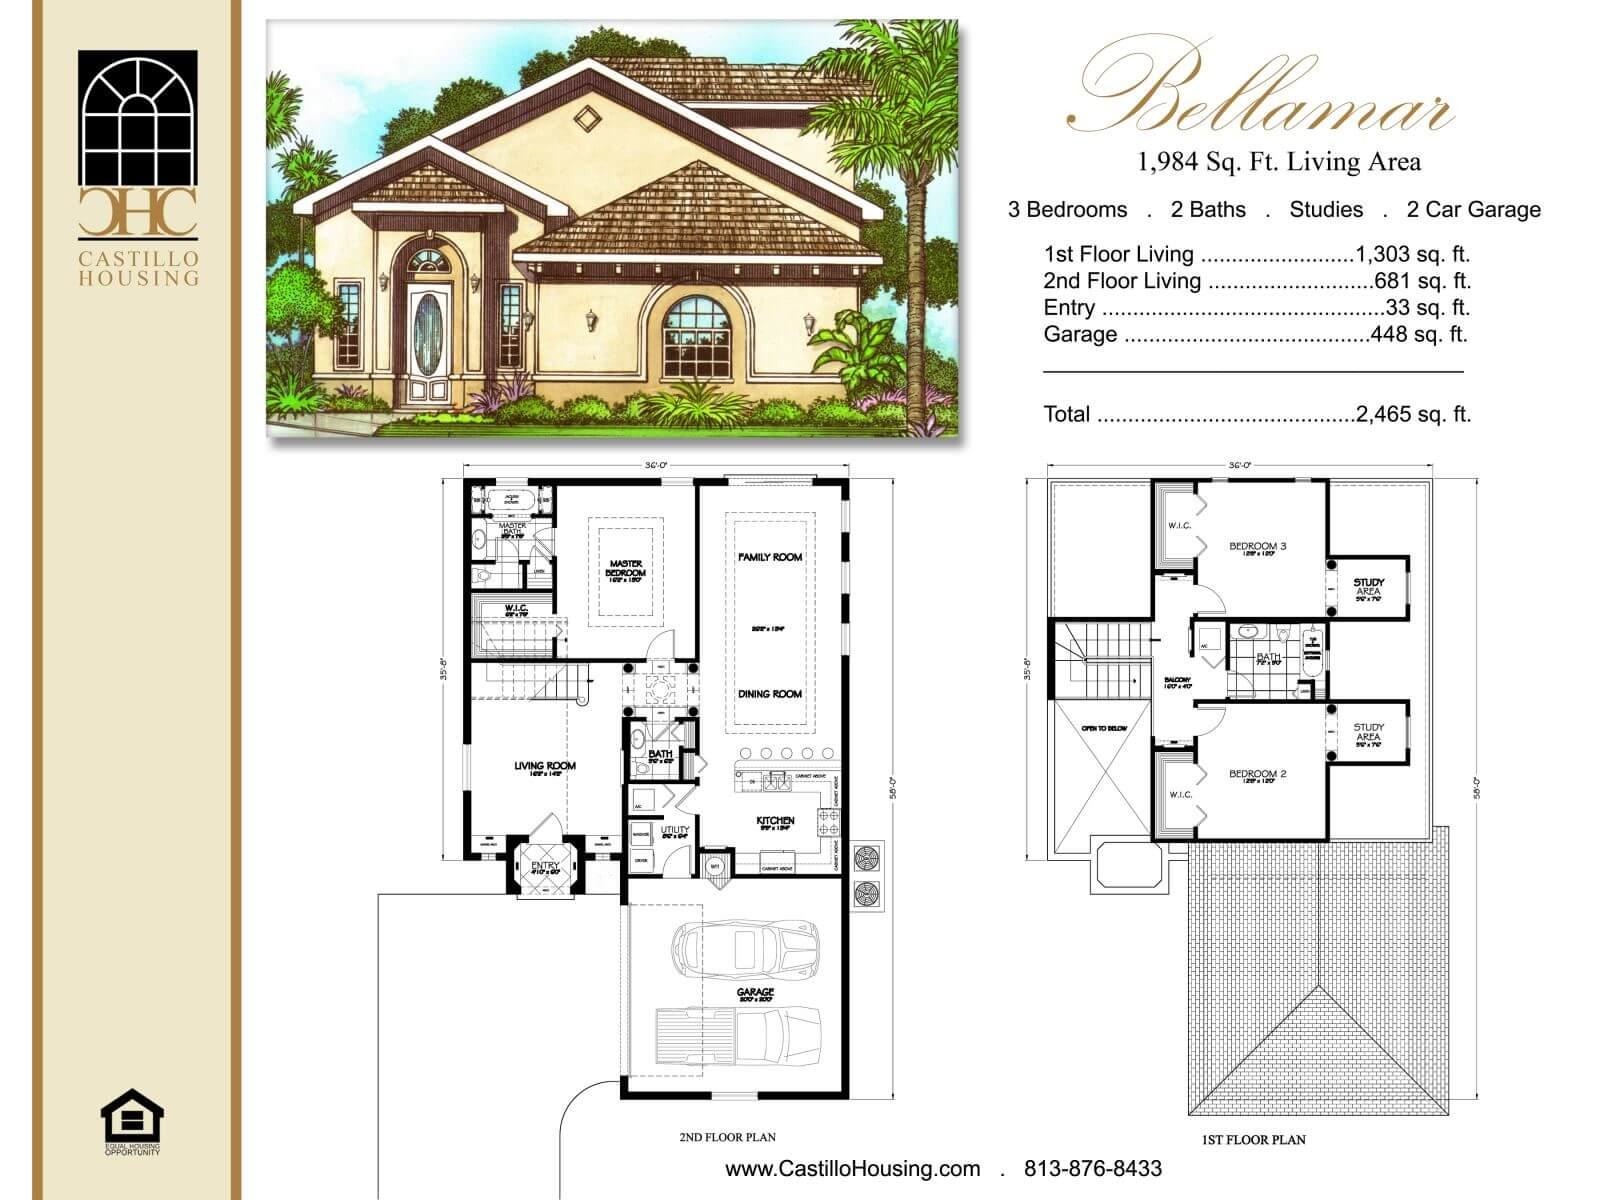 Floor Plans,1,001 SQ FT TO 2,000 SQ FT,1006